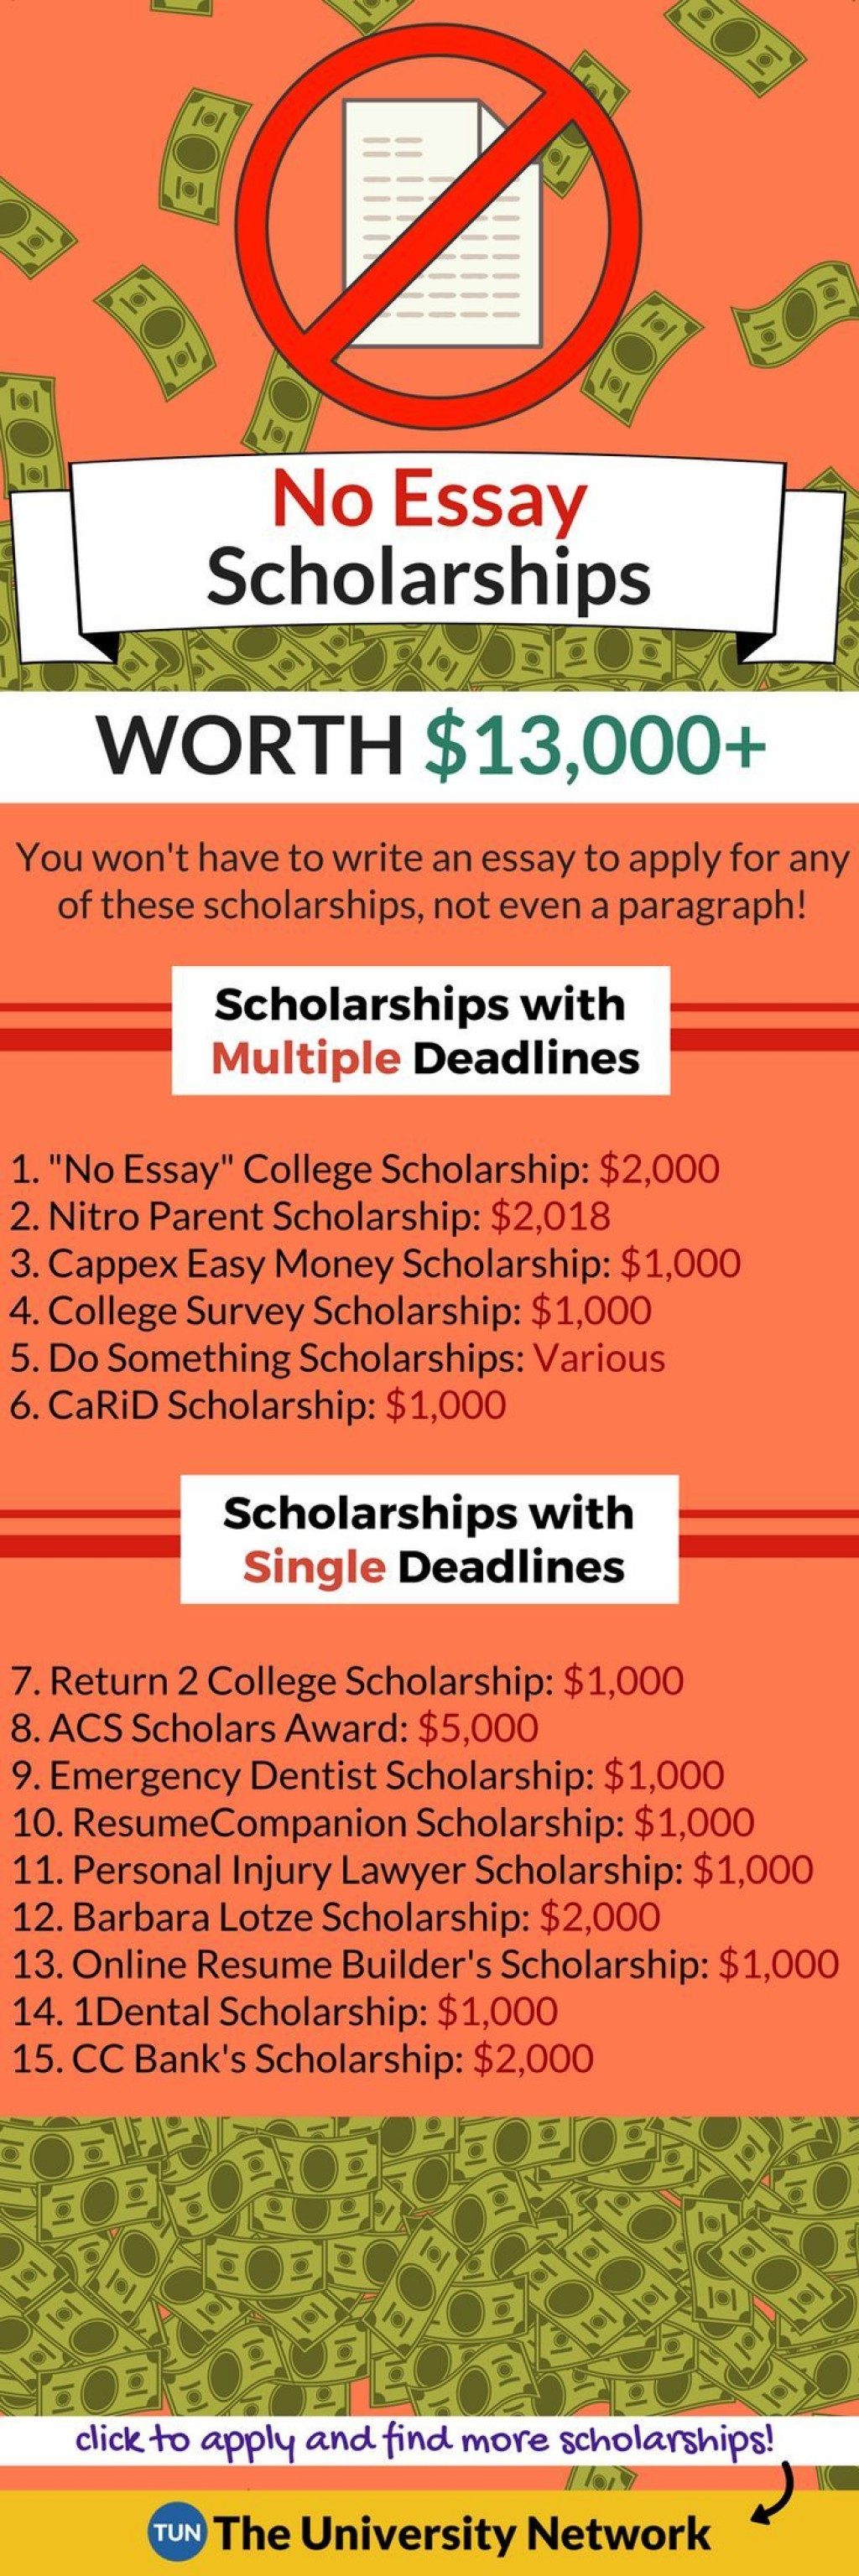 013 Essay Example No Exceptional Scholarships For Undergraduates High School Seniors College Students 2019 Large